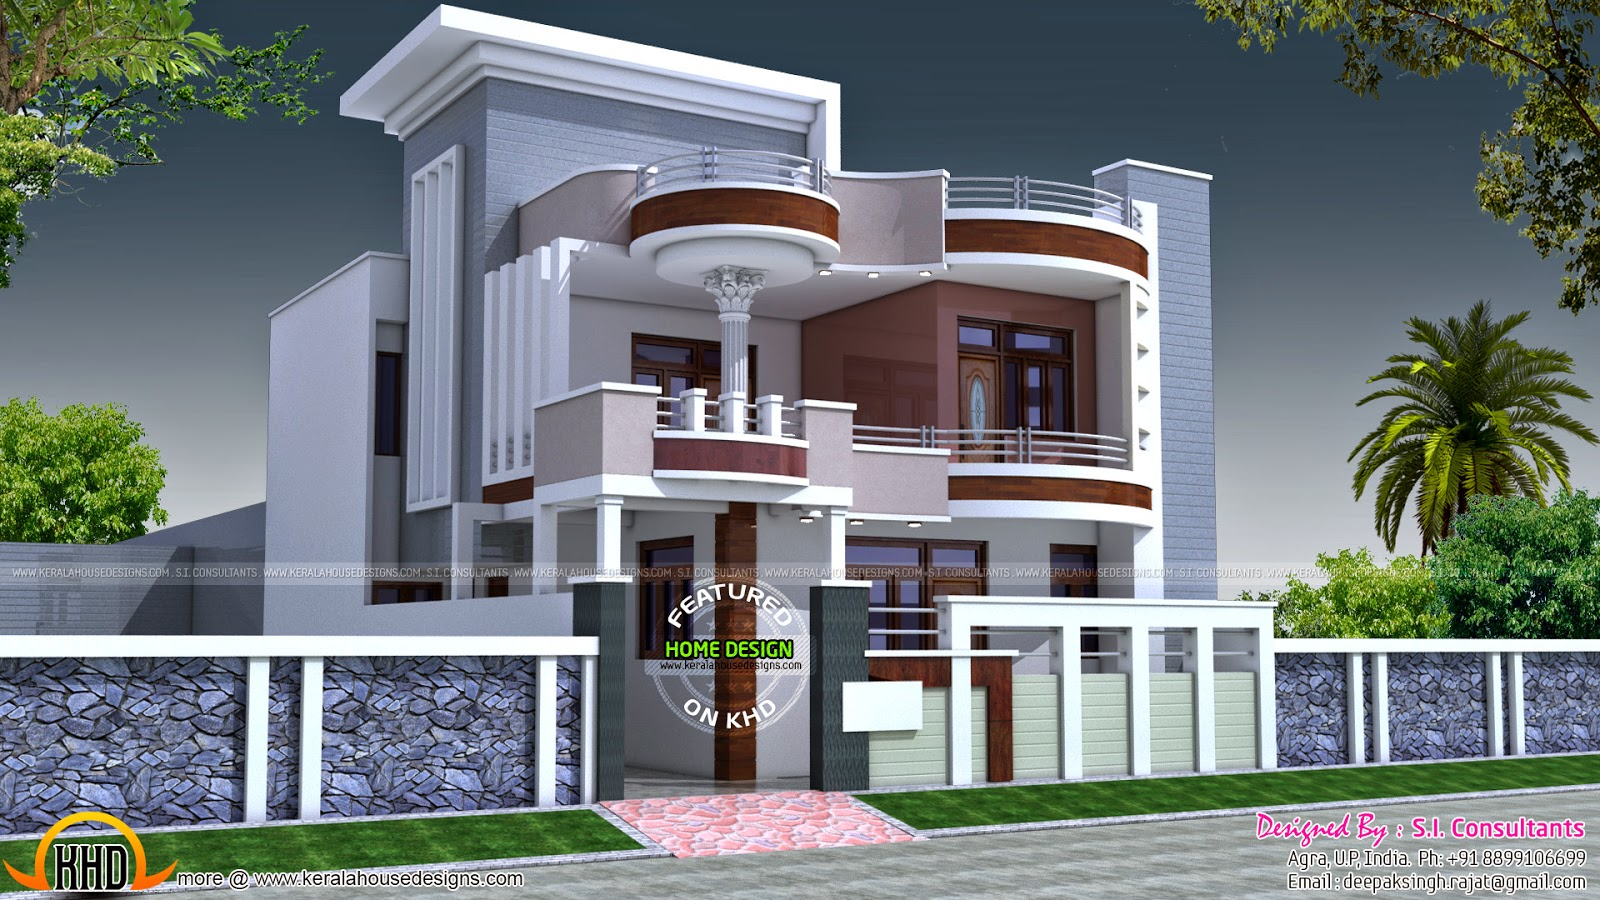 2875 square feet flat roof home keralahousedesigns for Home designs indian style